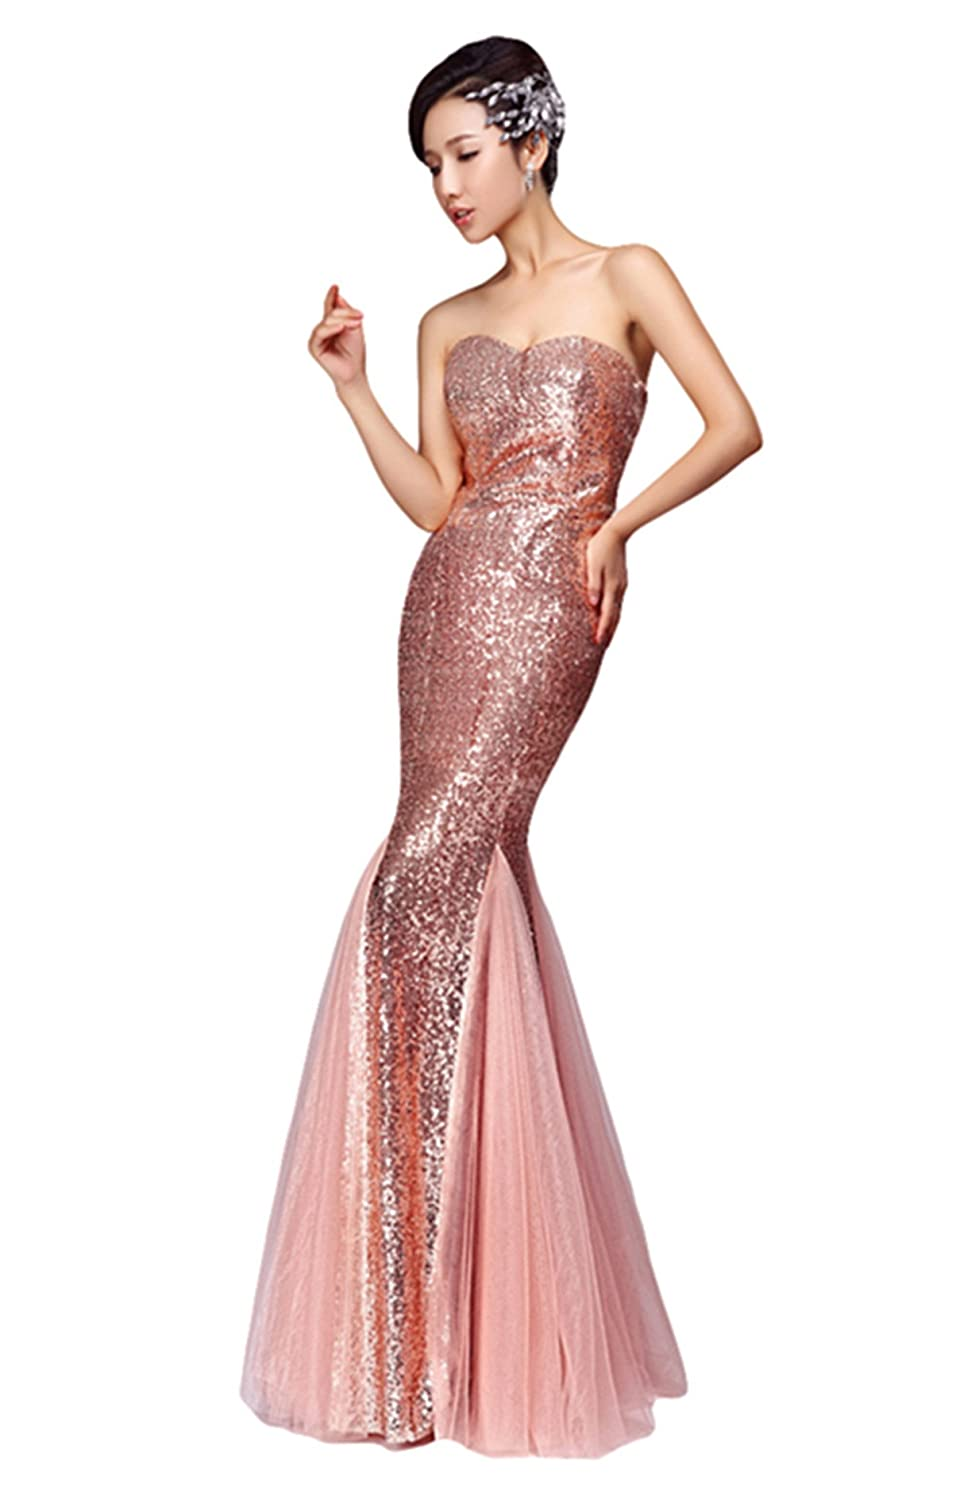 72077d3ae9a79 LIMATRY Women's Sexy Sequined Bra Mermaid Wedding Toast Evening Dress at  Amazon Women's Clothing store: